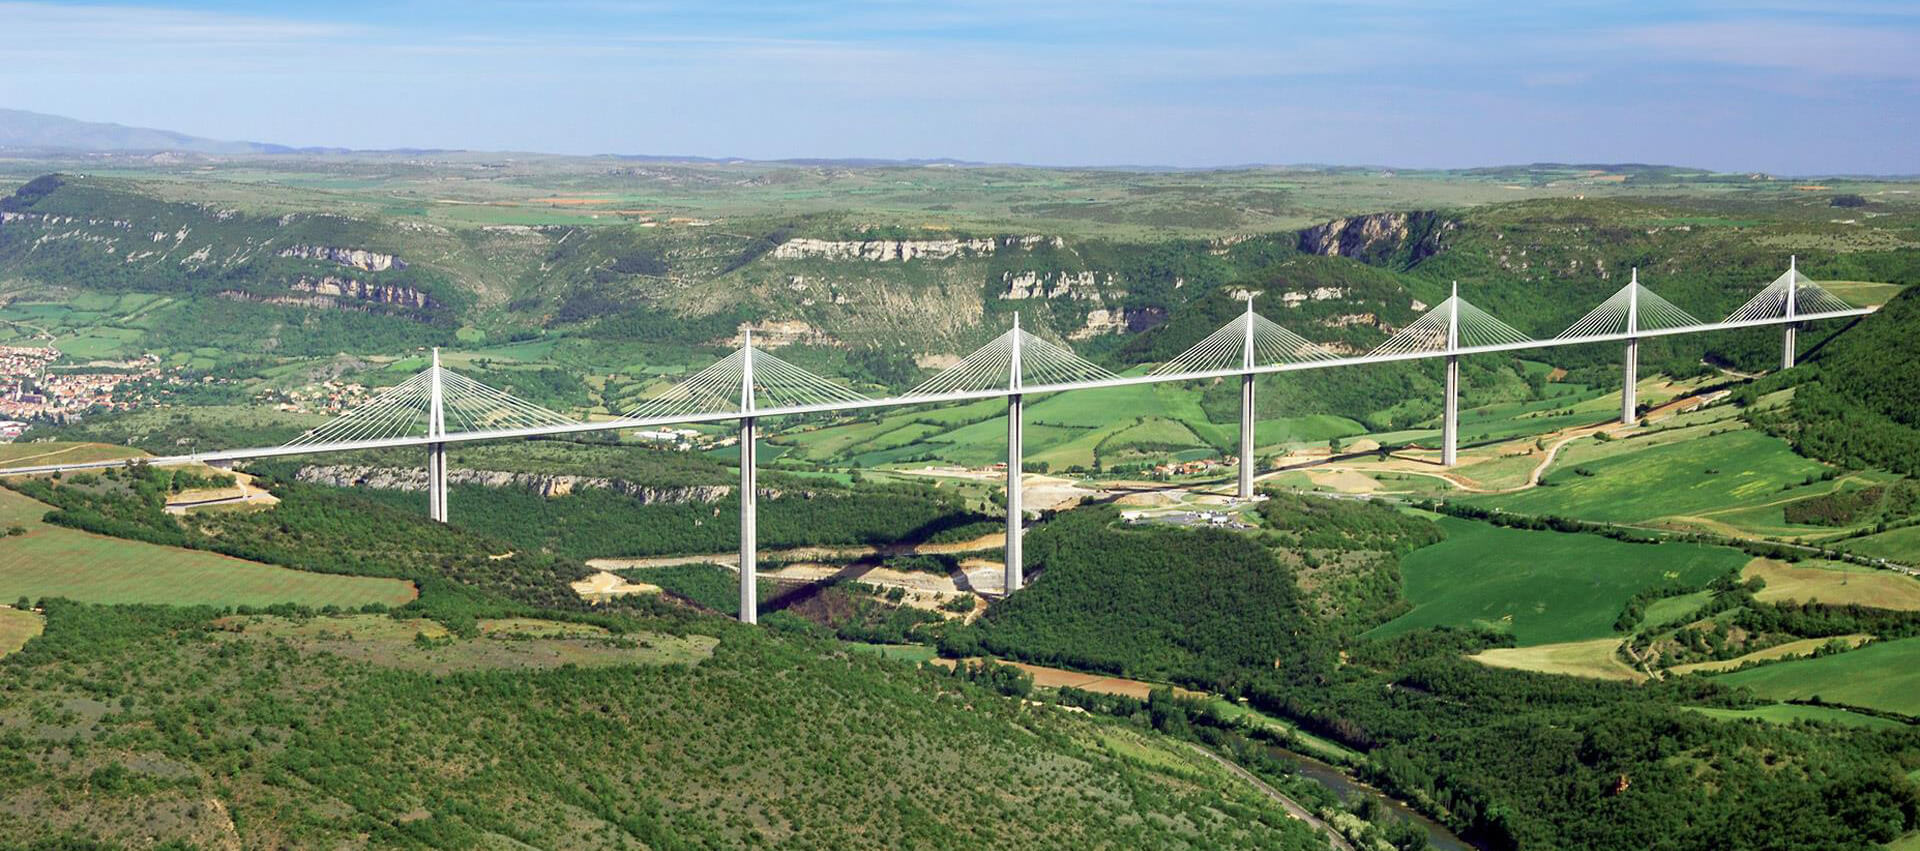 The Viaduct of Millau will take you to Rodez, near the campsite Parc du Charouzech en Aveyron.